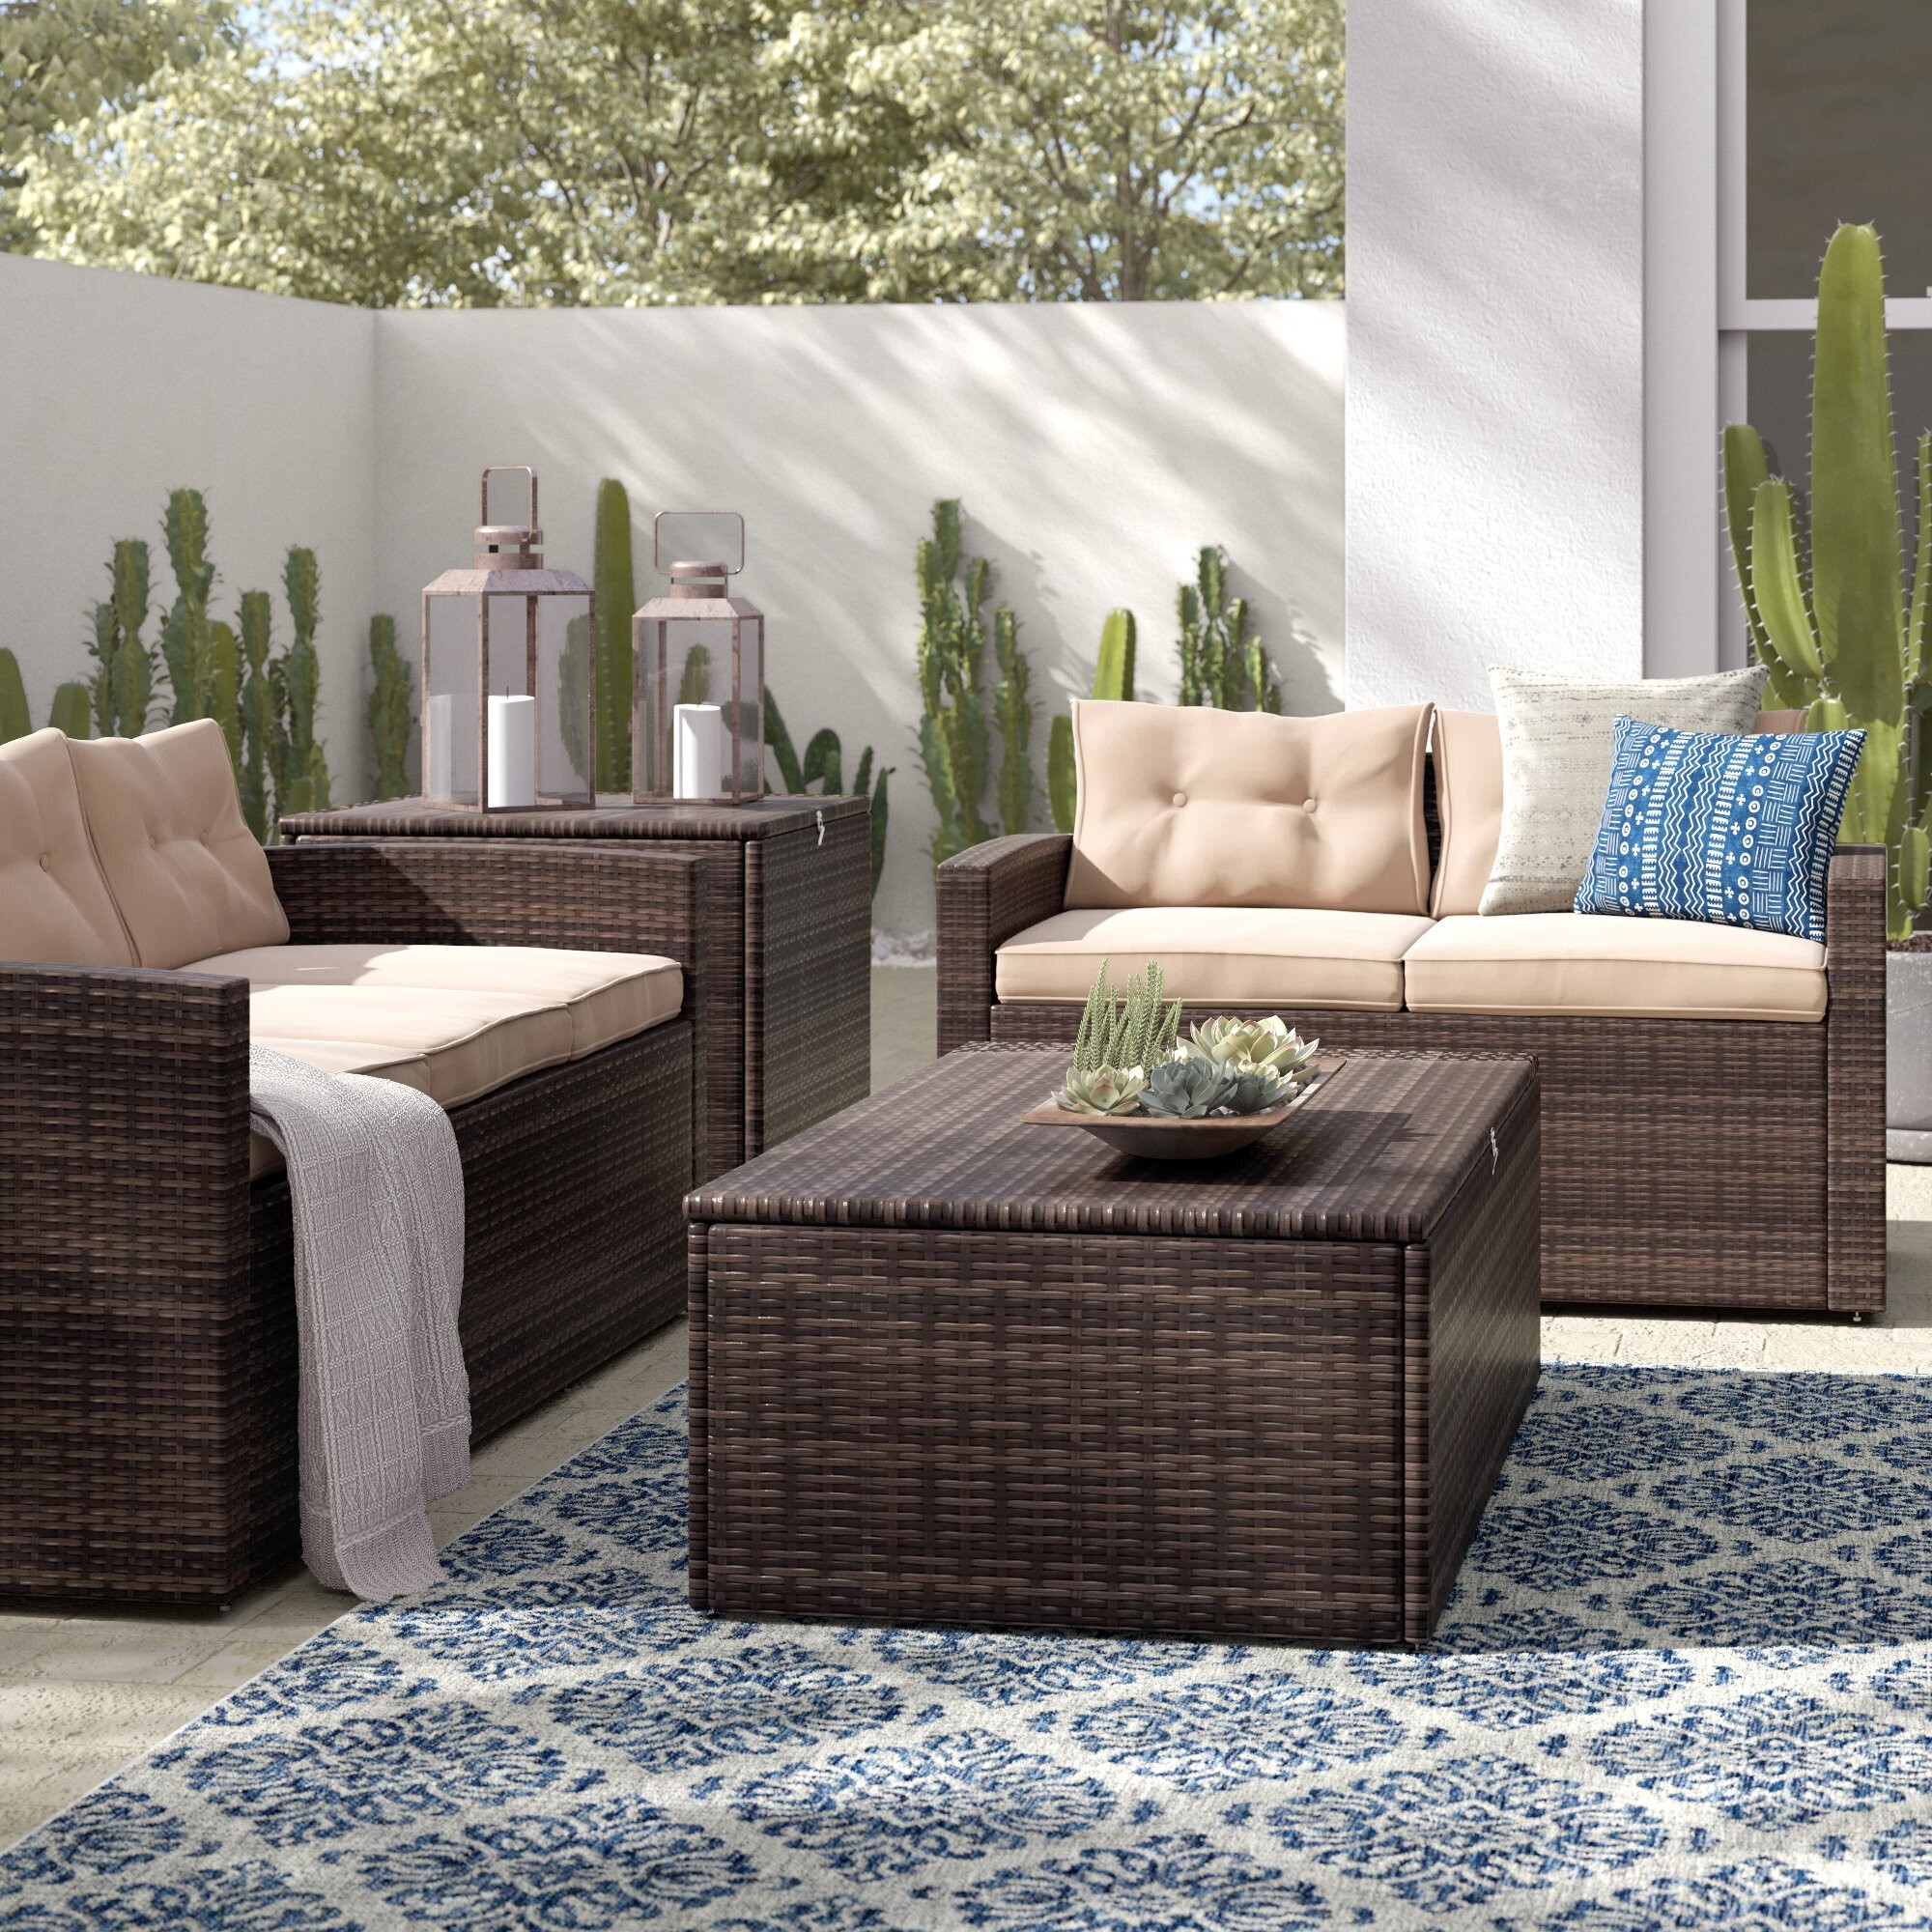 How To Choose A Patio Conversation Set